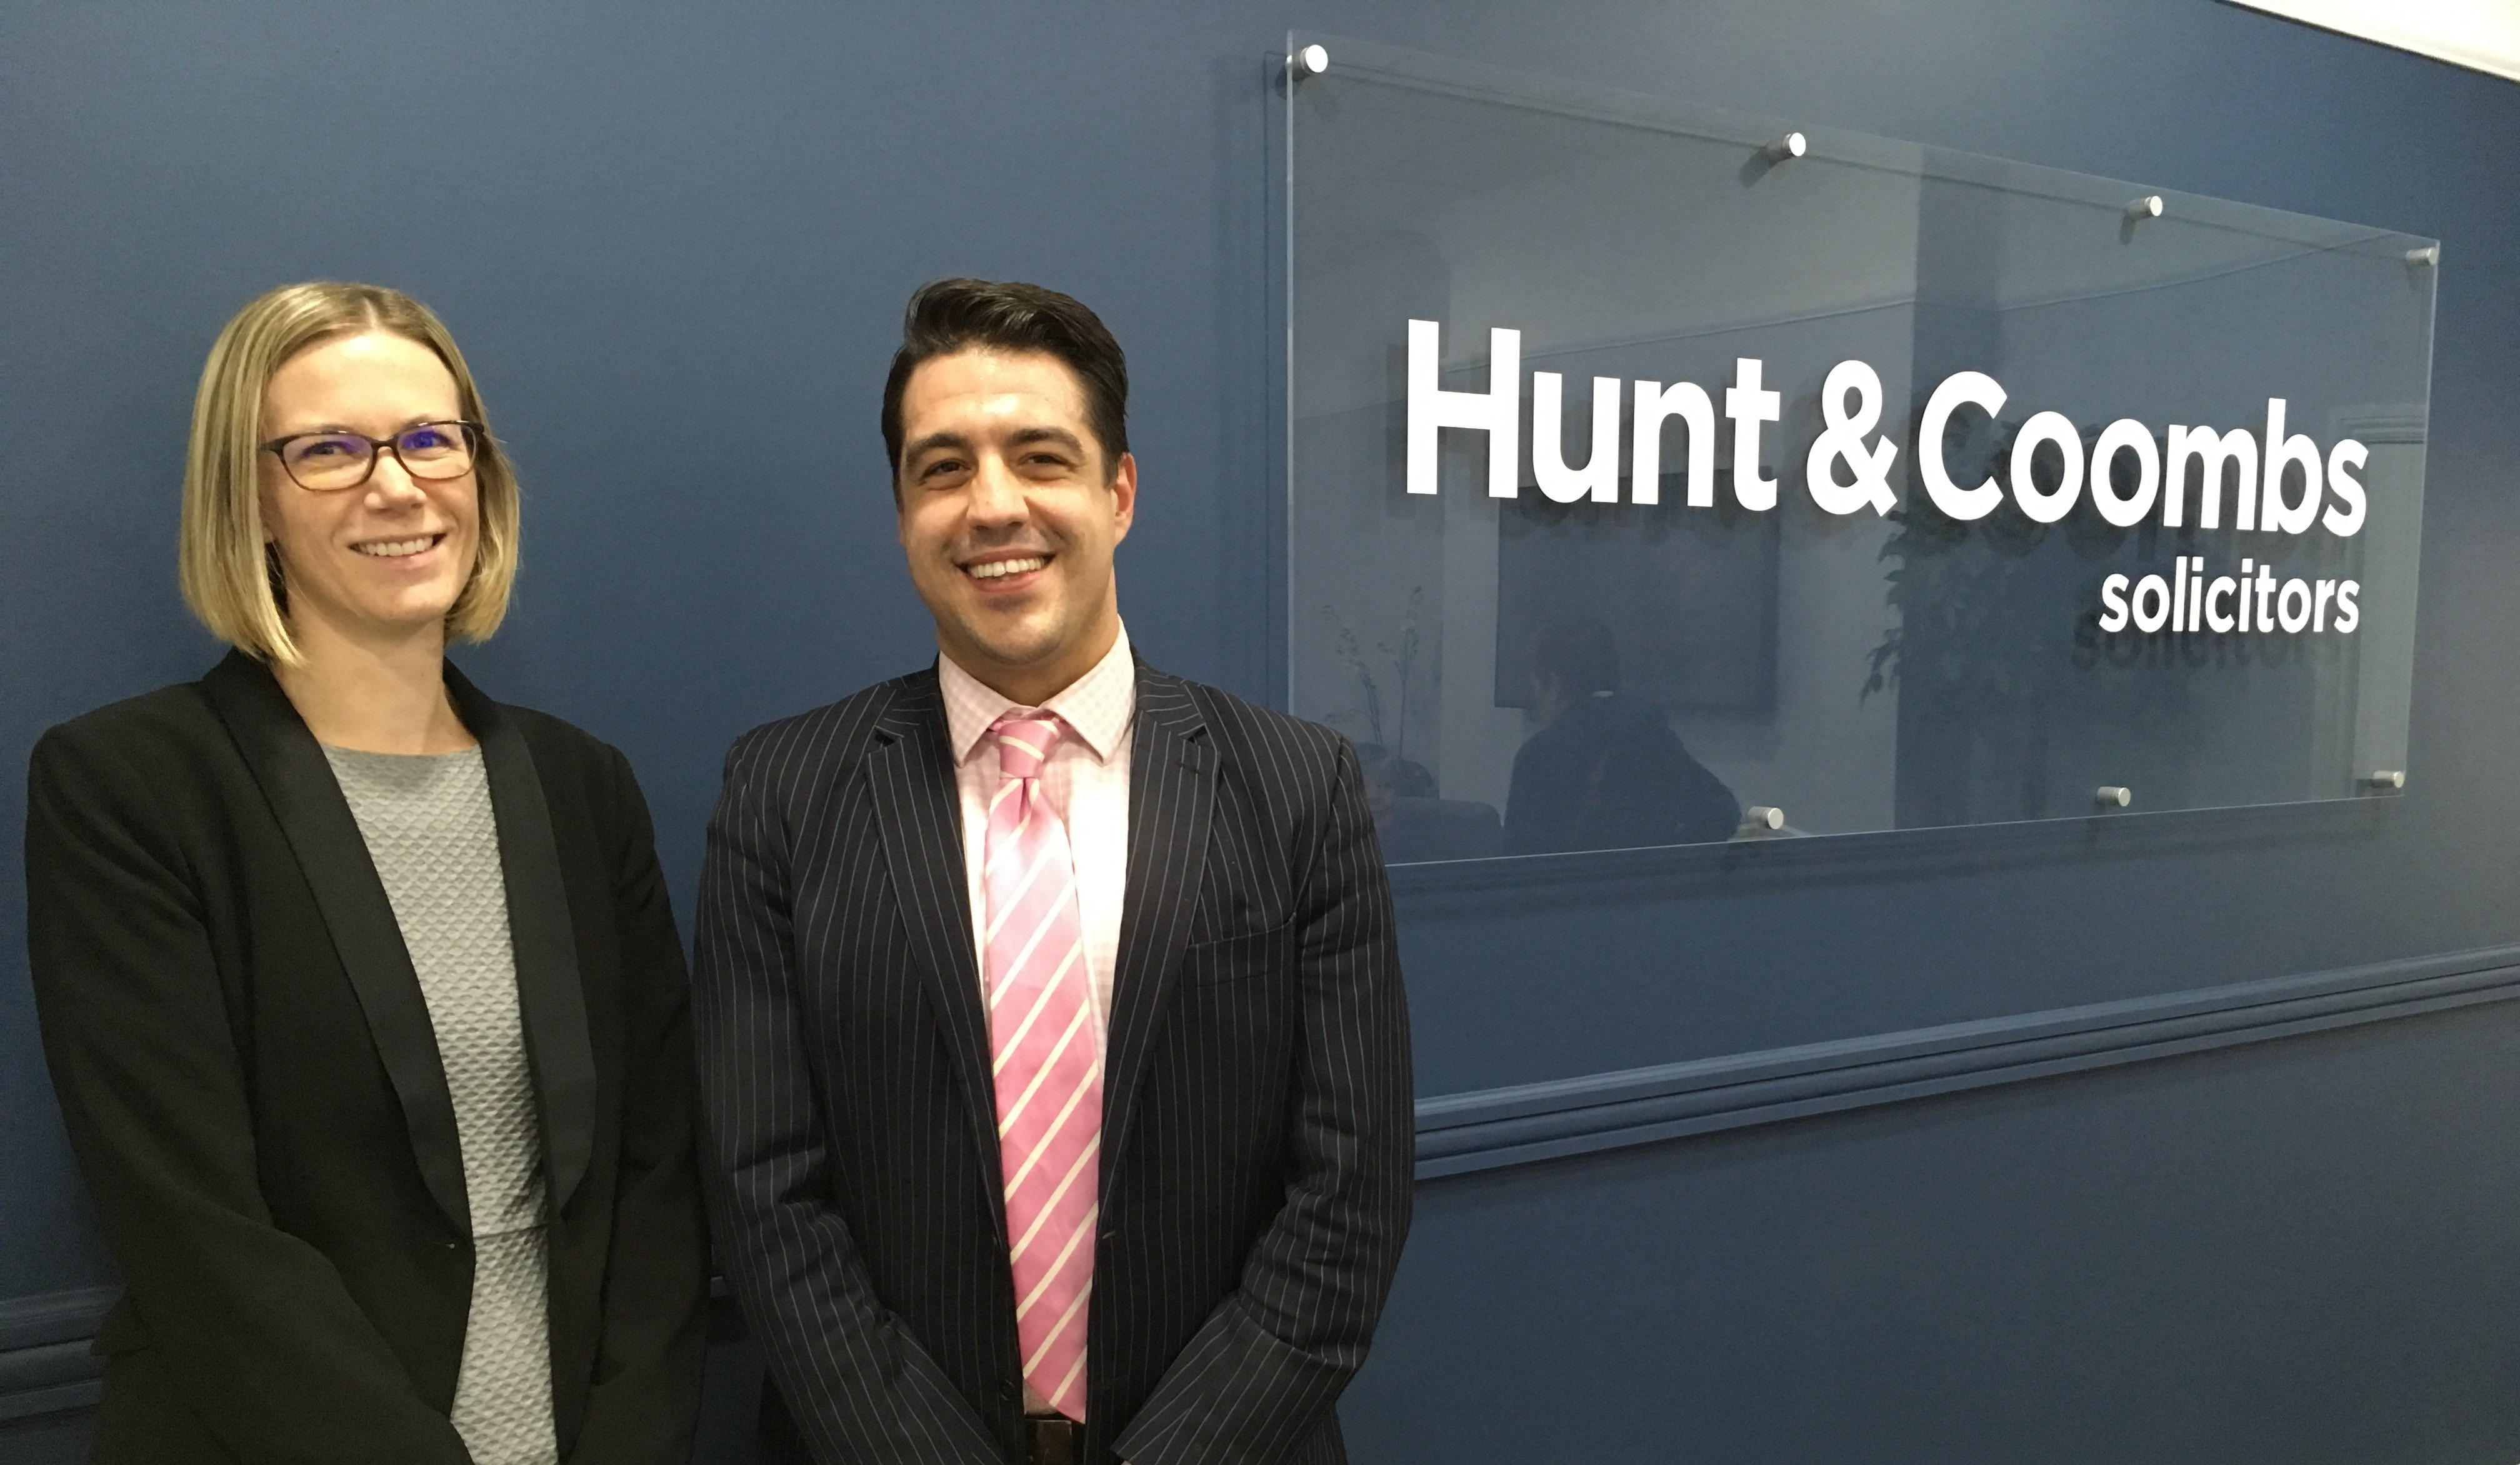 Hunt & Coombs strengthens family and divorce legal services with new appointments in Peterborough and Huntingdon